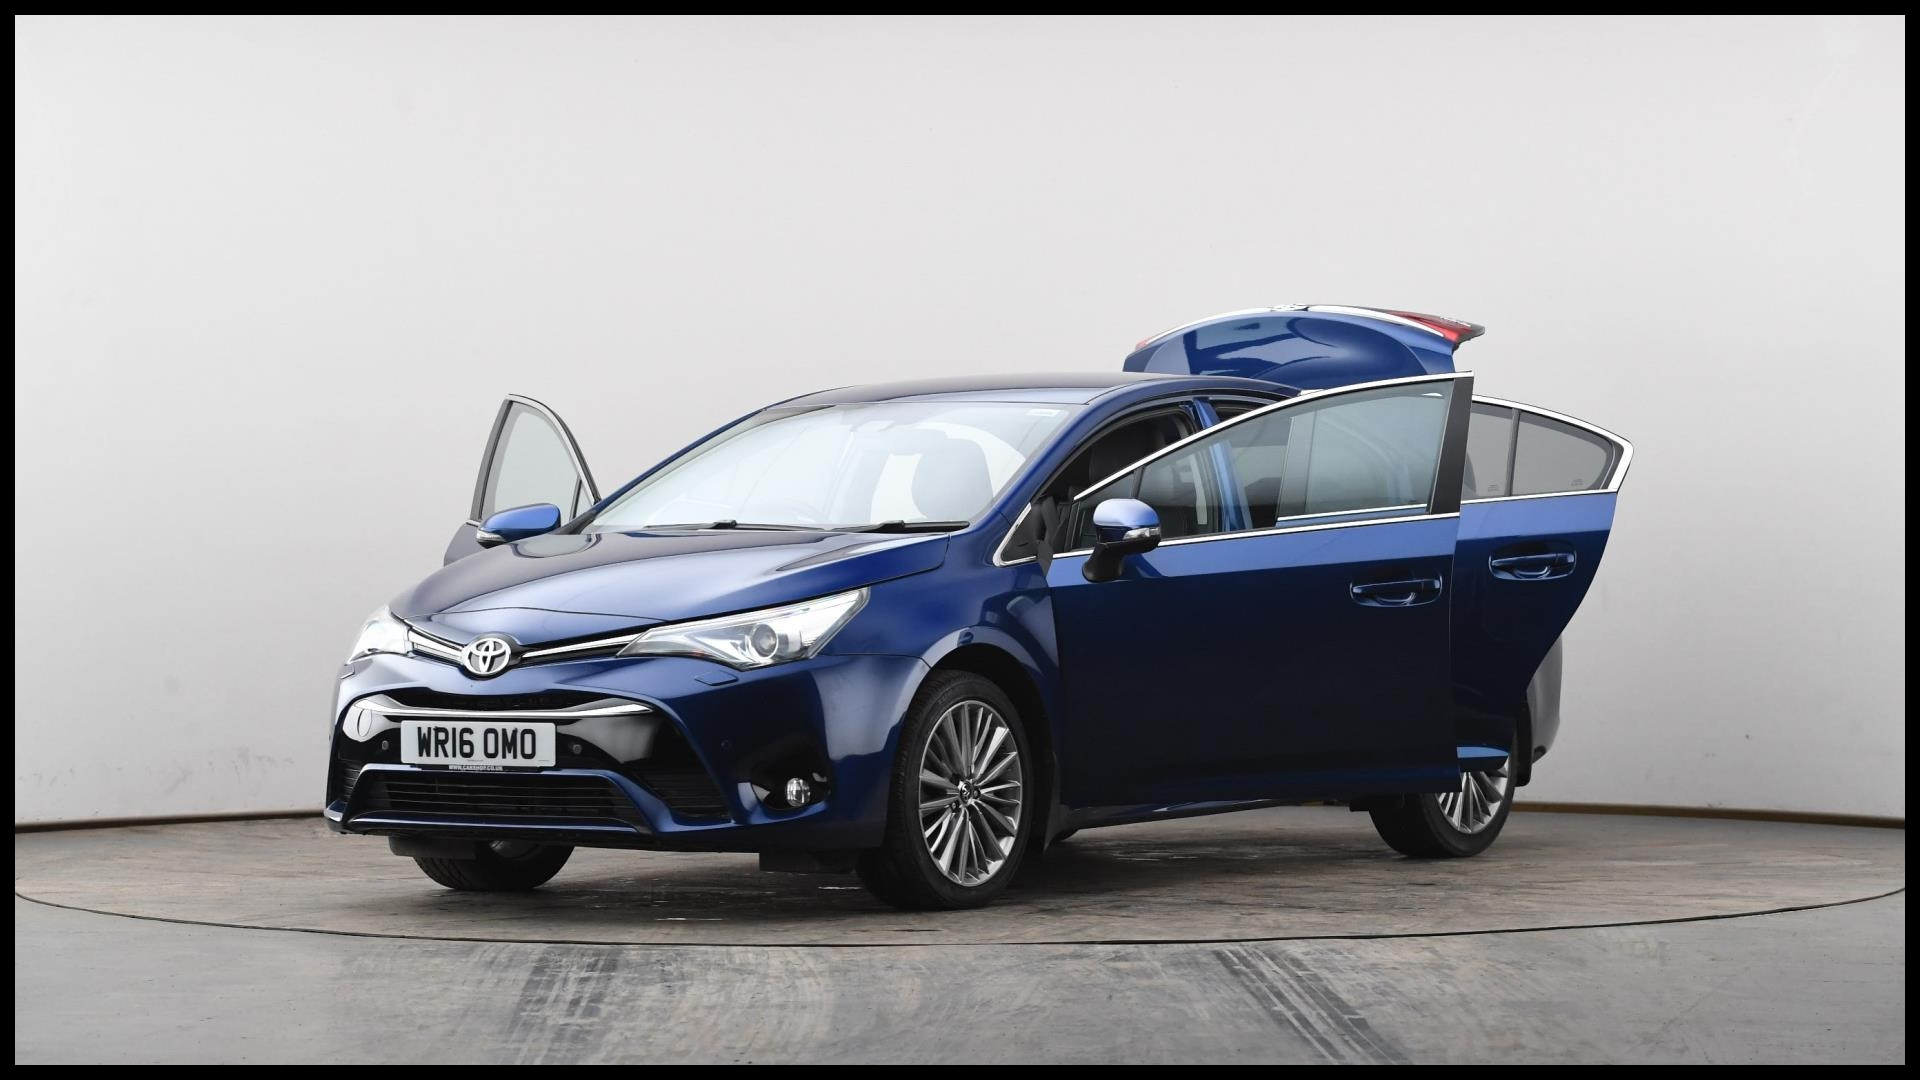 Insurance toyota Yaris New toyota Yaris First Car Insurance Best Used toyota Avensis 2 0d